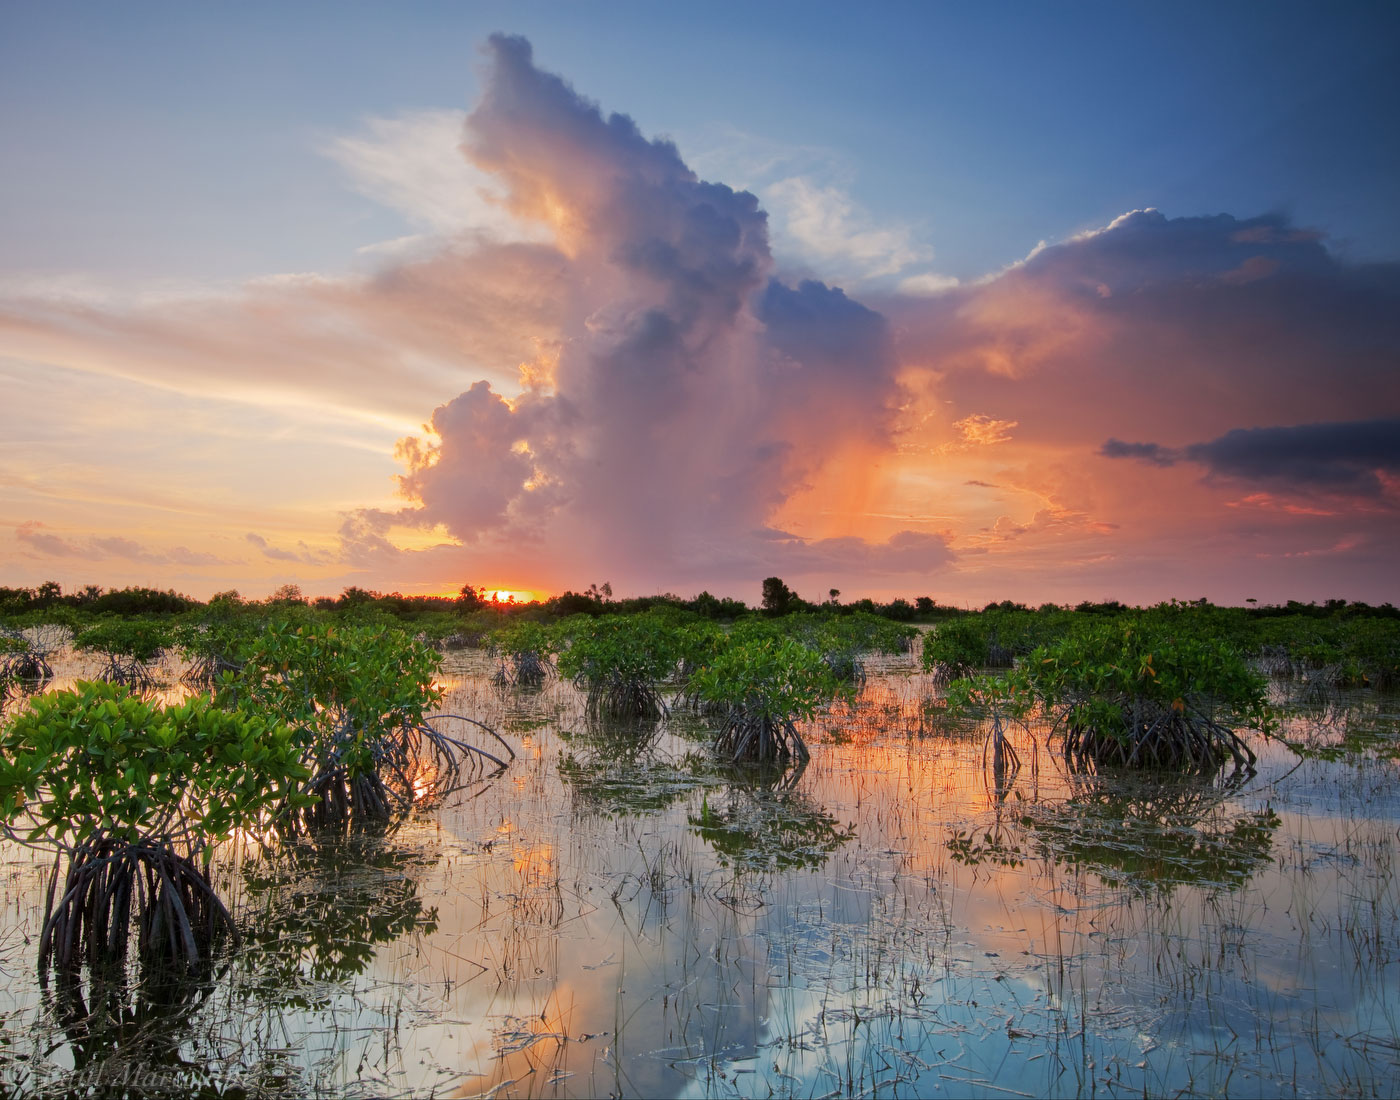 everglades, mangroves, storm, rhizophora mangle, Florida, nature, photography, florida national parks, photo